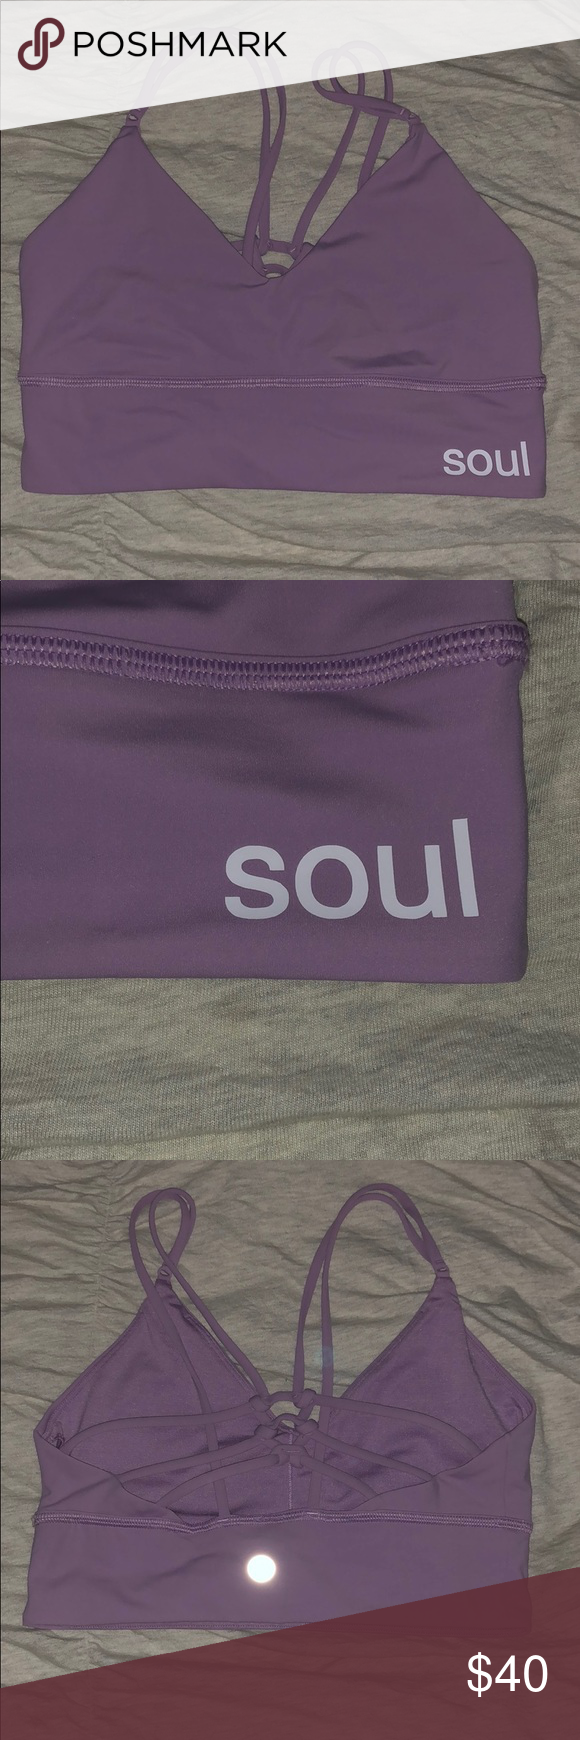 477b75d5c69af SoulCycle Lululemon Uncaged Bra Violetta Soul Cycle Light Purple Sports Bra.  Worn once. Braided back. Still available online but for much more. lululemon  ...